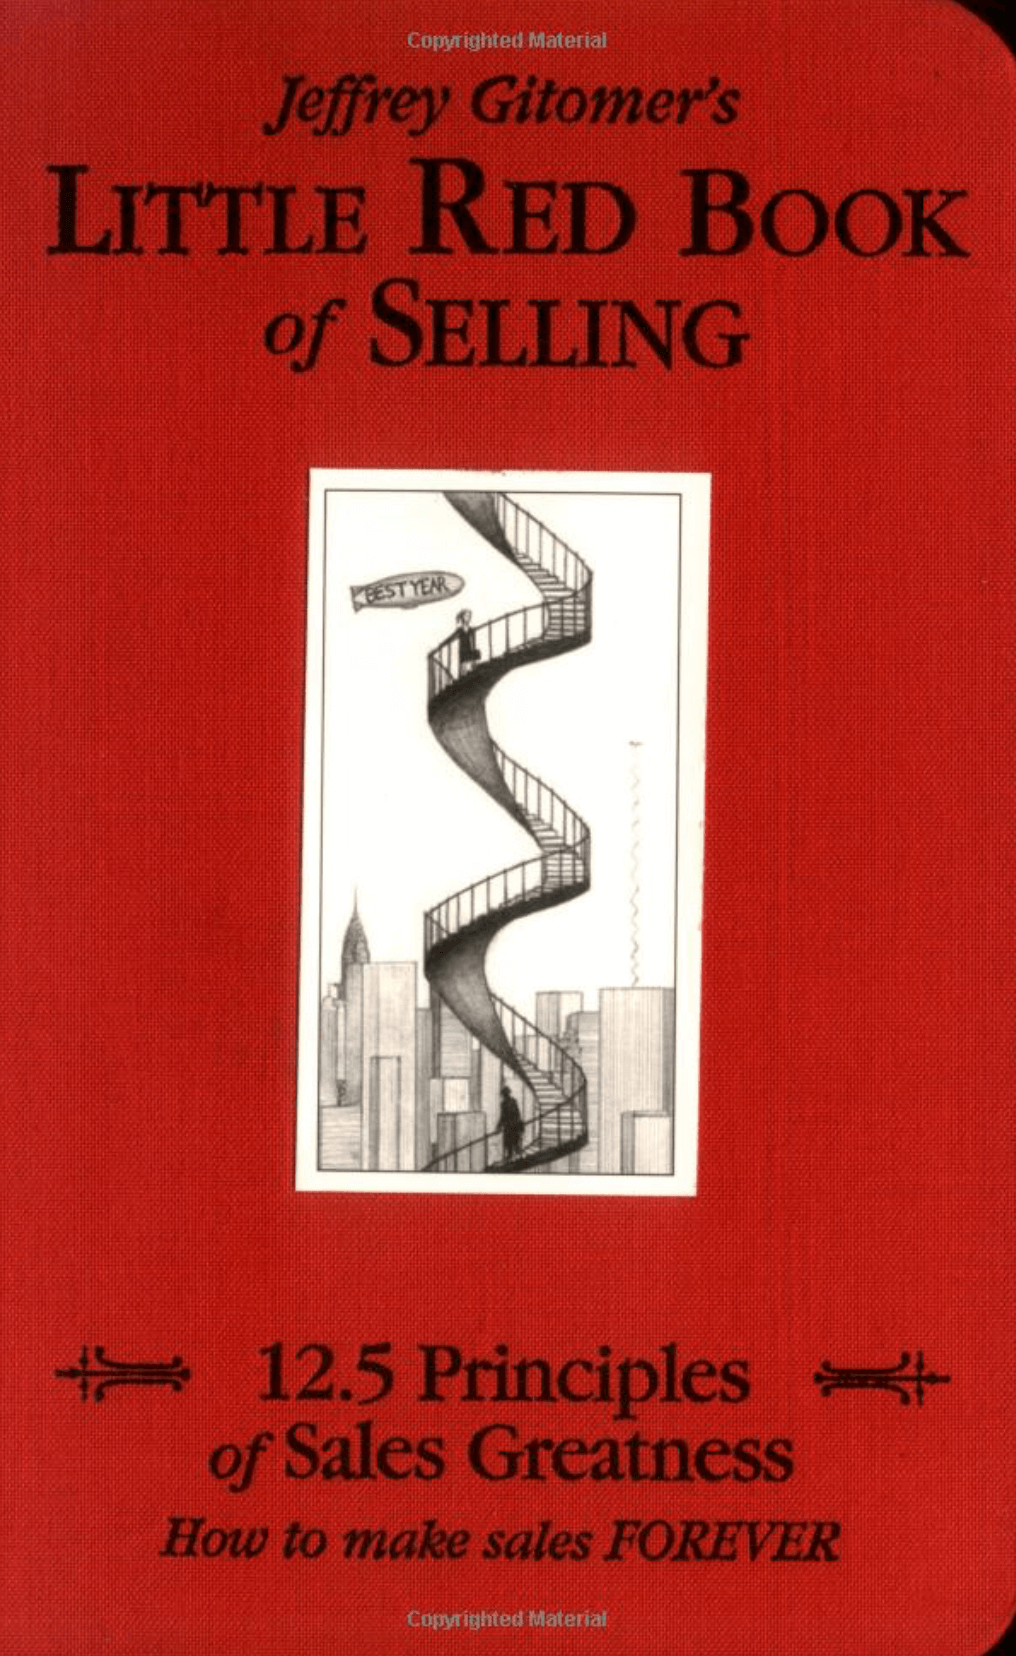 """Little Red Book of Selling: 12.5 ""Principles of Sales Greatness"" by Jeffrey Gitomer"